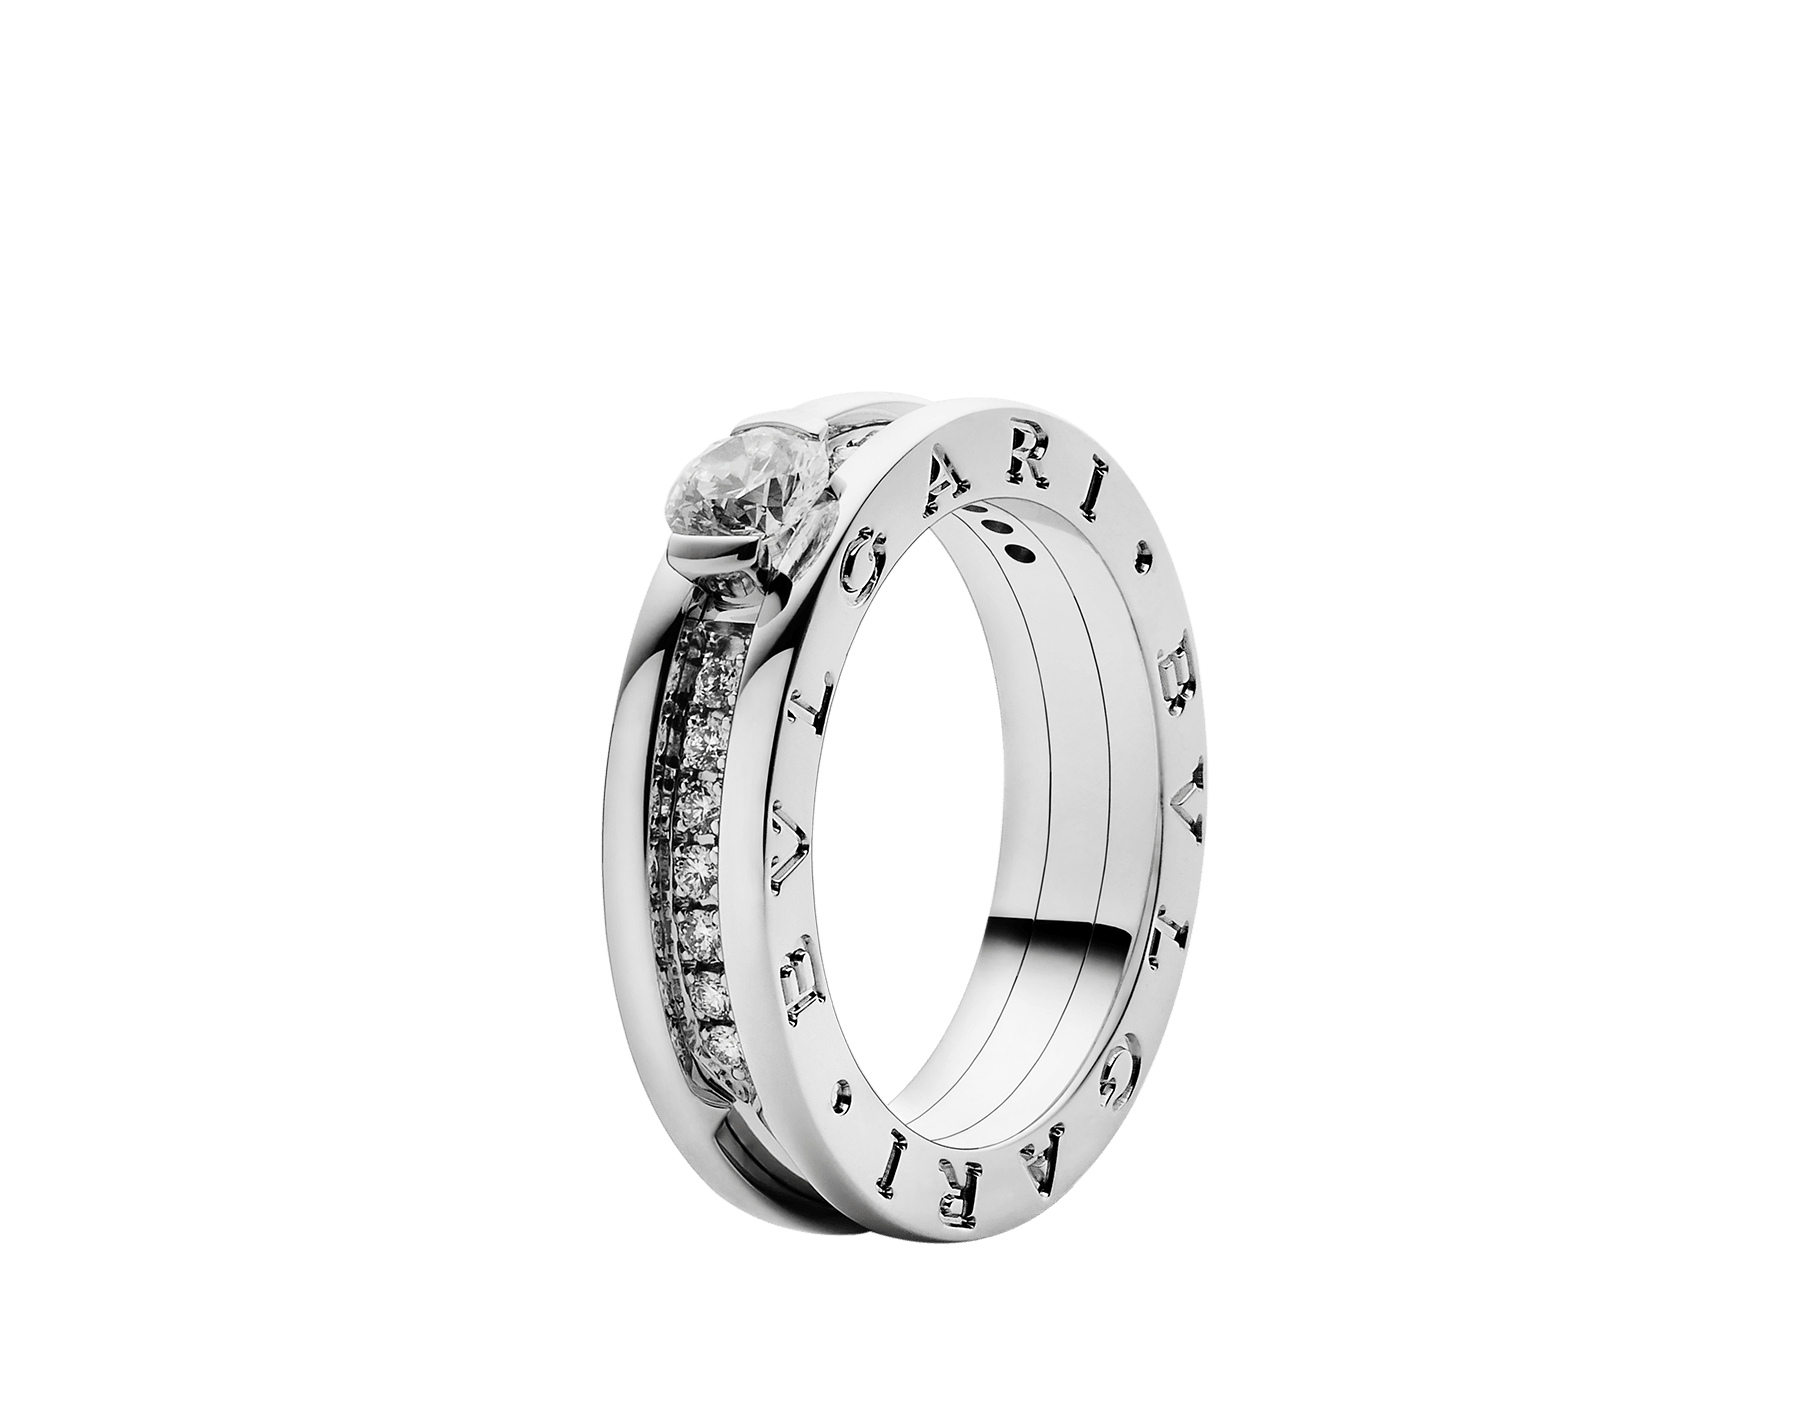 B.zero1 one-band ring in 18 kt white gold set with pavé diamonds on the spiral and with one round brilliant cut diamond. Available in 0.30 ct. 335980 image 1